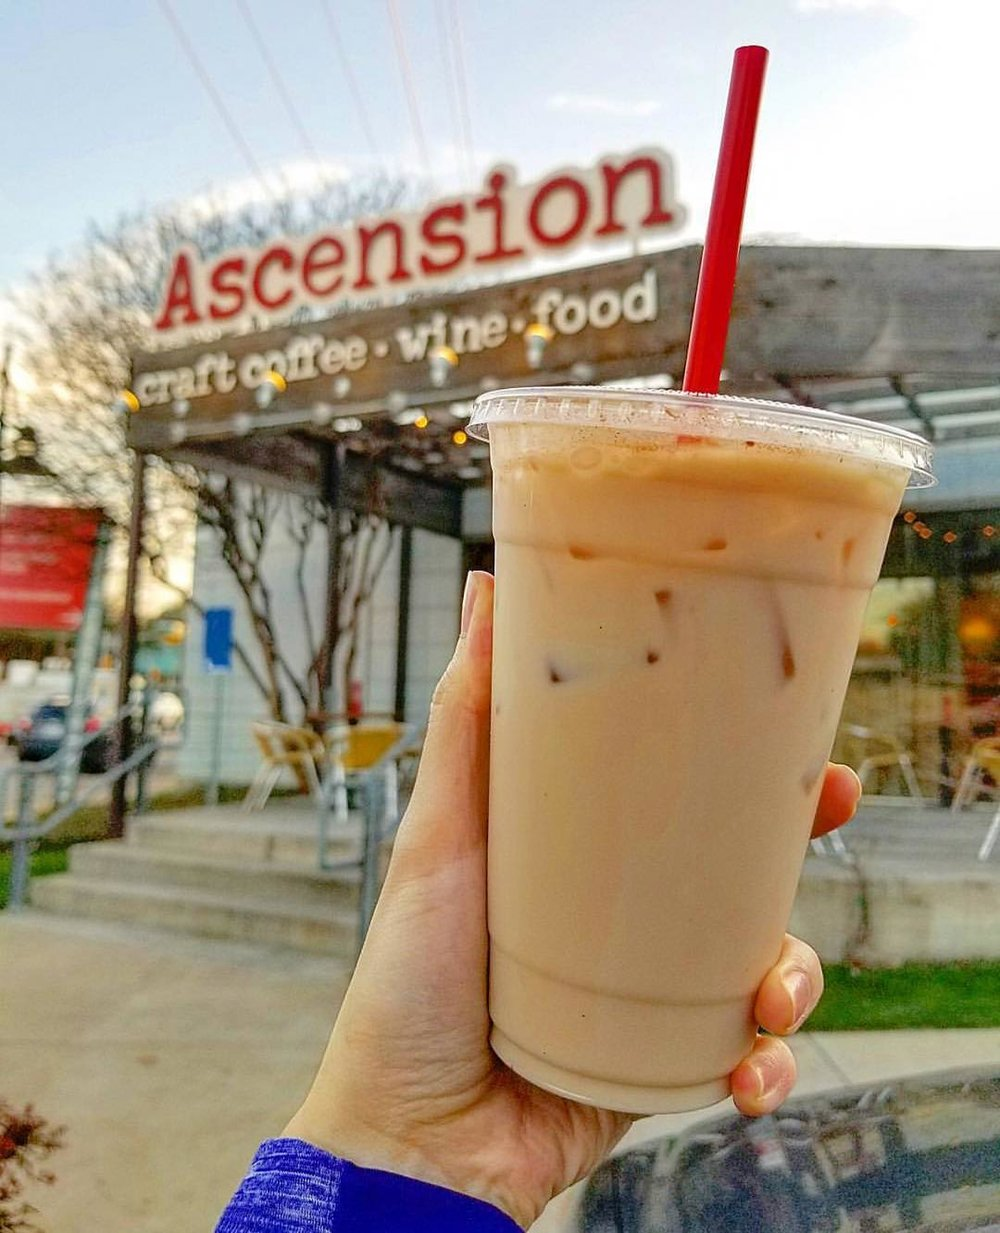 Ascension | (1621 Oak Lawn Ave.; 200 Crescent Ct. #40; 1601 Elm St. #120) - Think of this place as a farm-to-table restaurant and wine bar that leads with a coffee focus. Make it your Saturday breakfast go-to (the croque madame eggs benedict is a must), or just head over with your laptop to get some work done. Also, half-price wine bottles after 4:30.